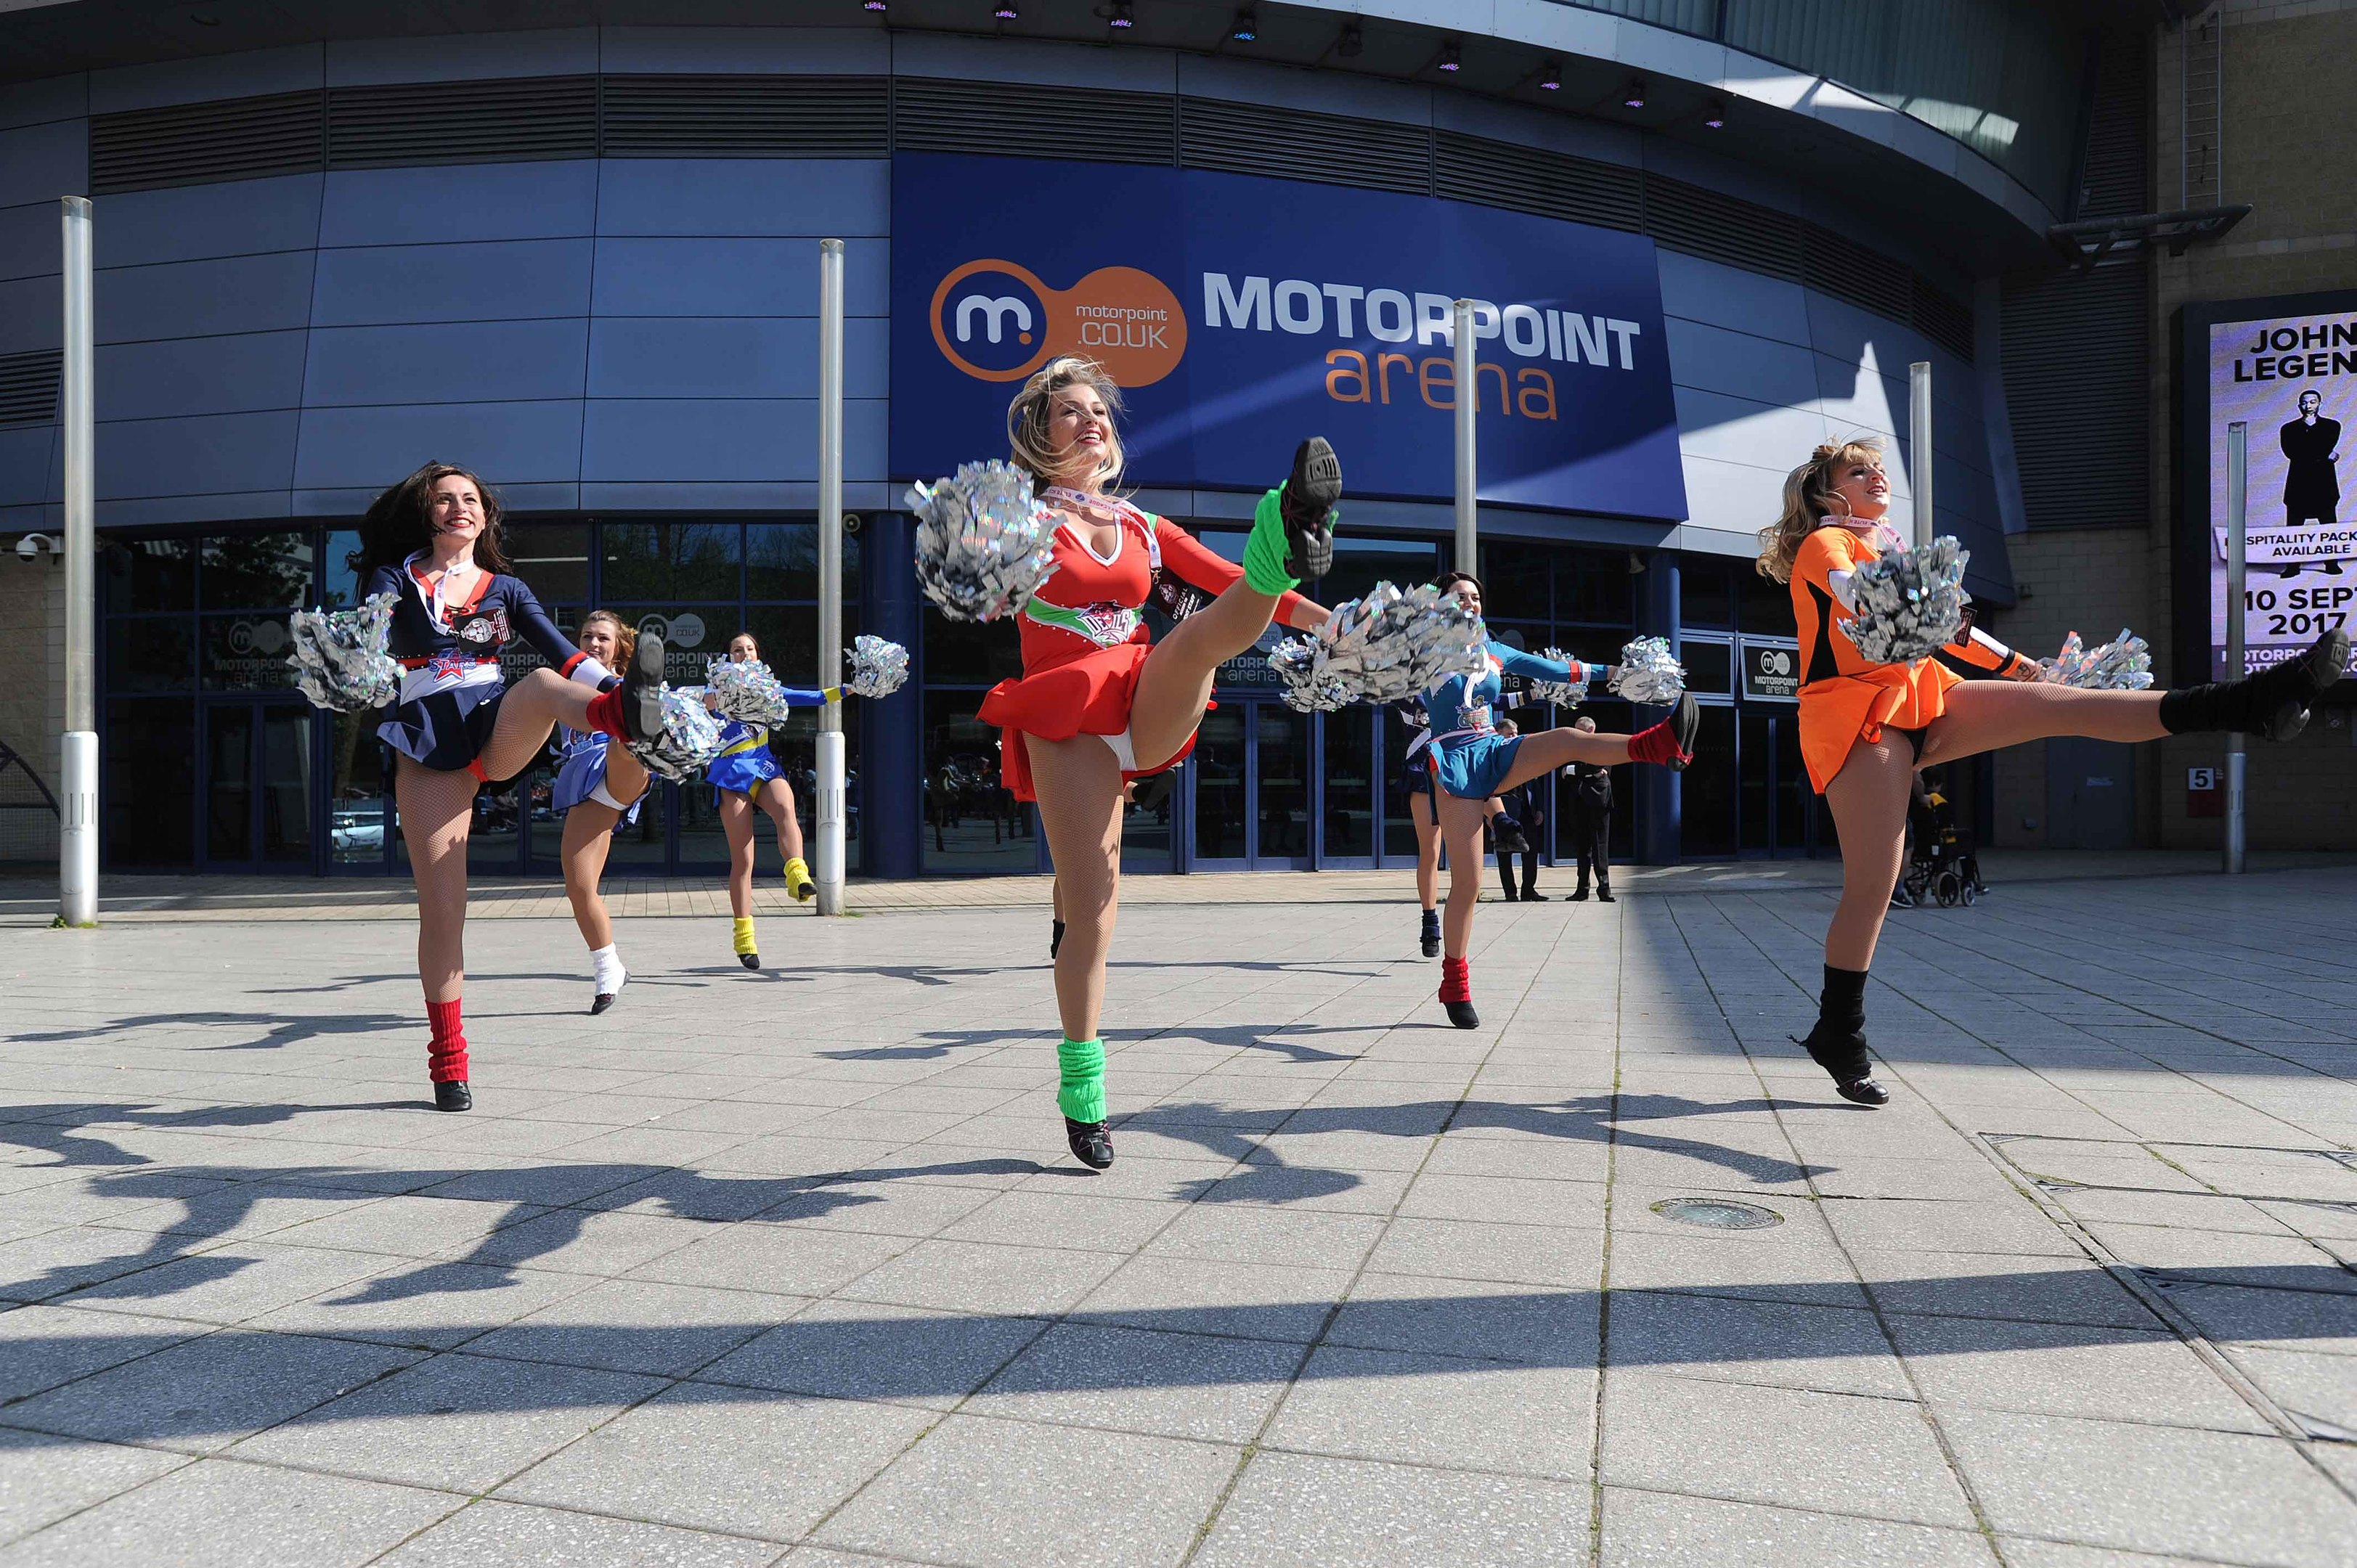 Cheer leaders greet fans arriving at the Motorpoint Arena.